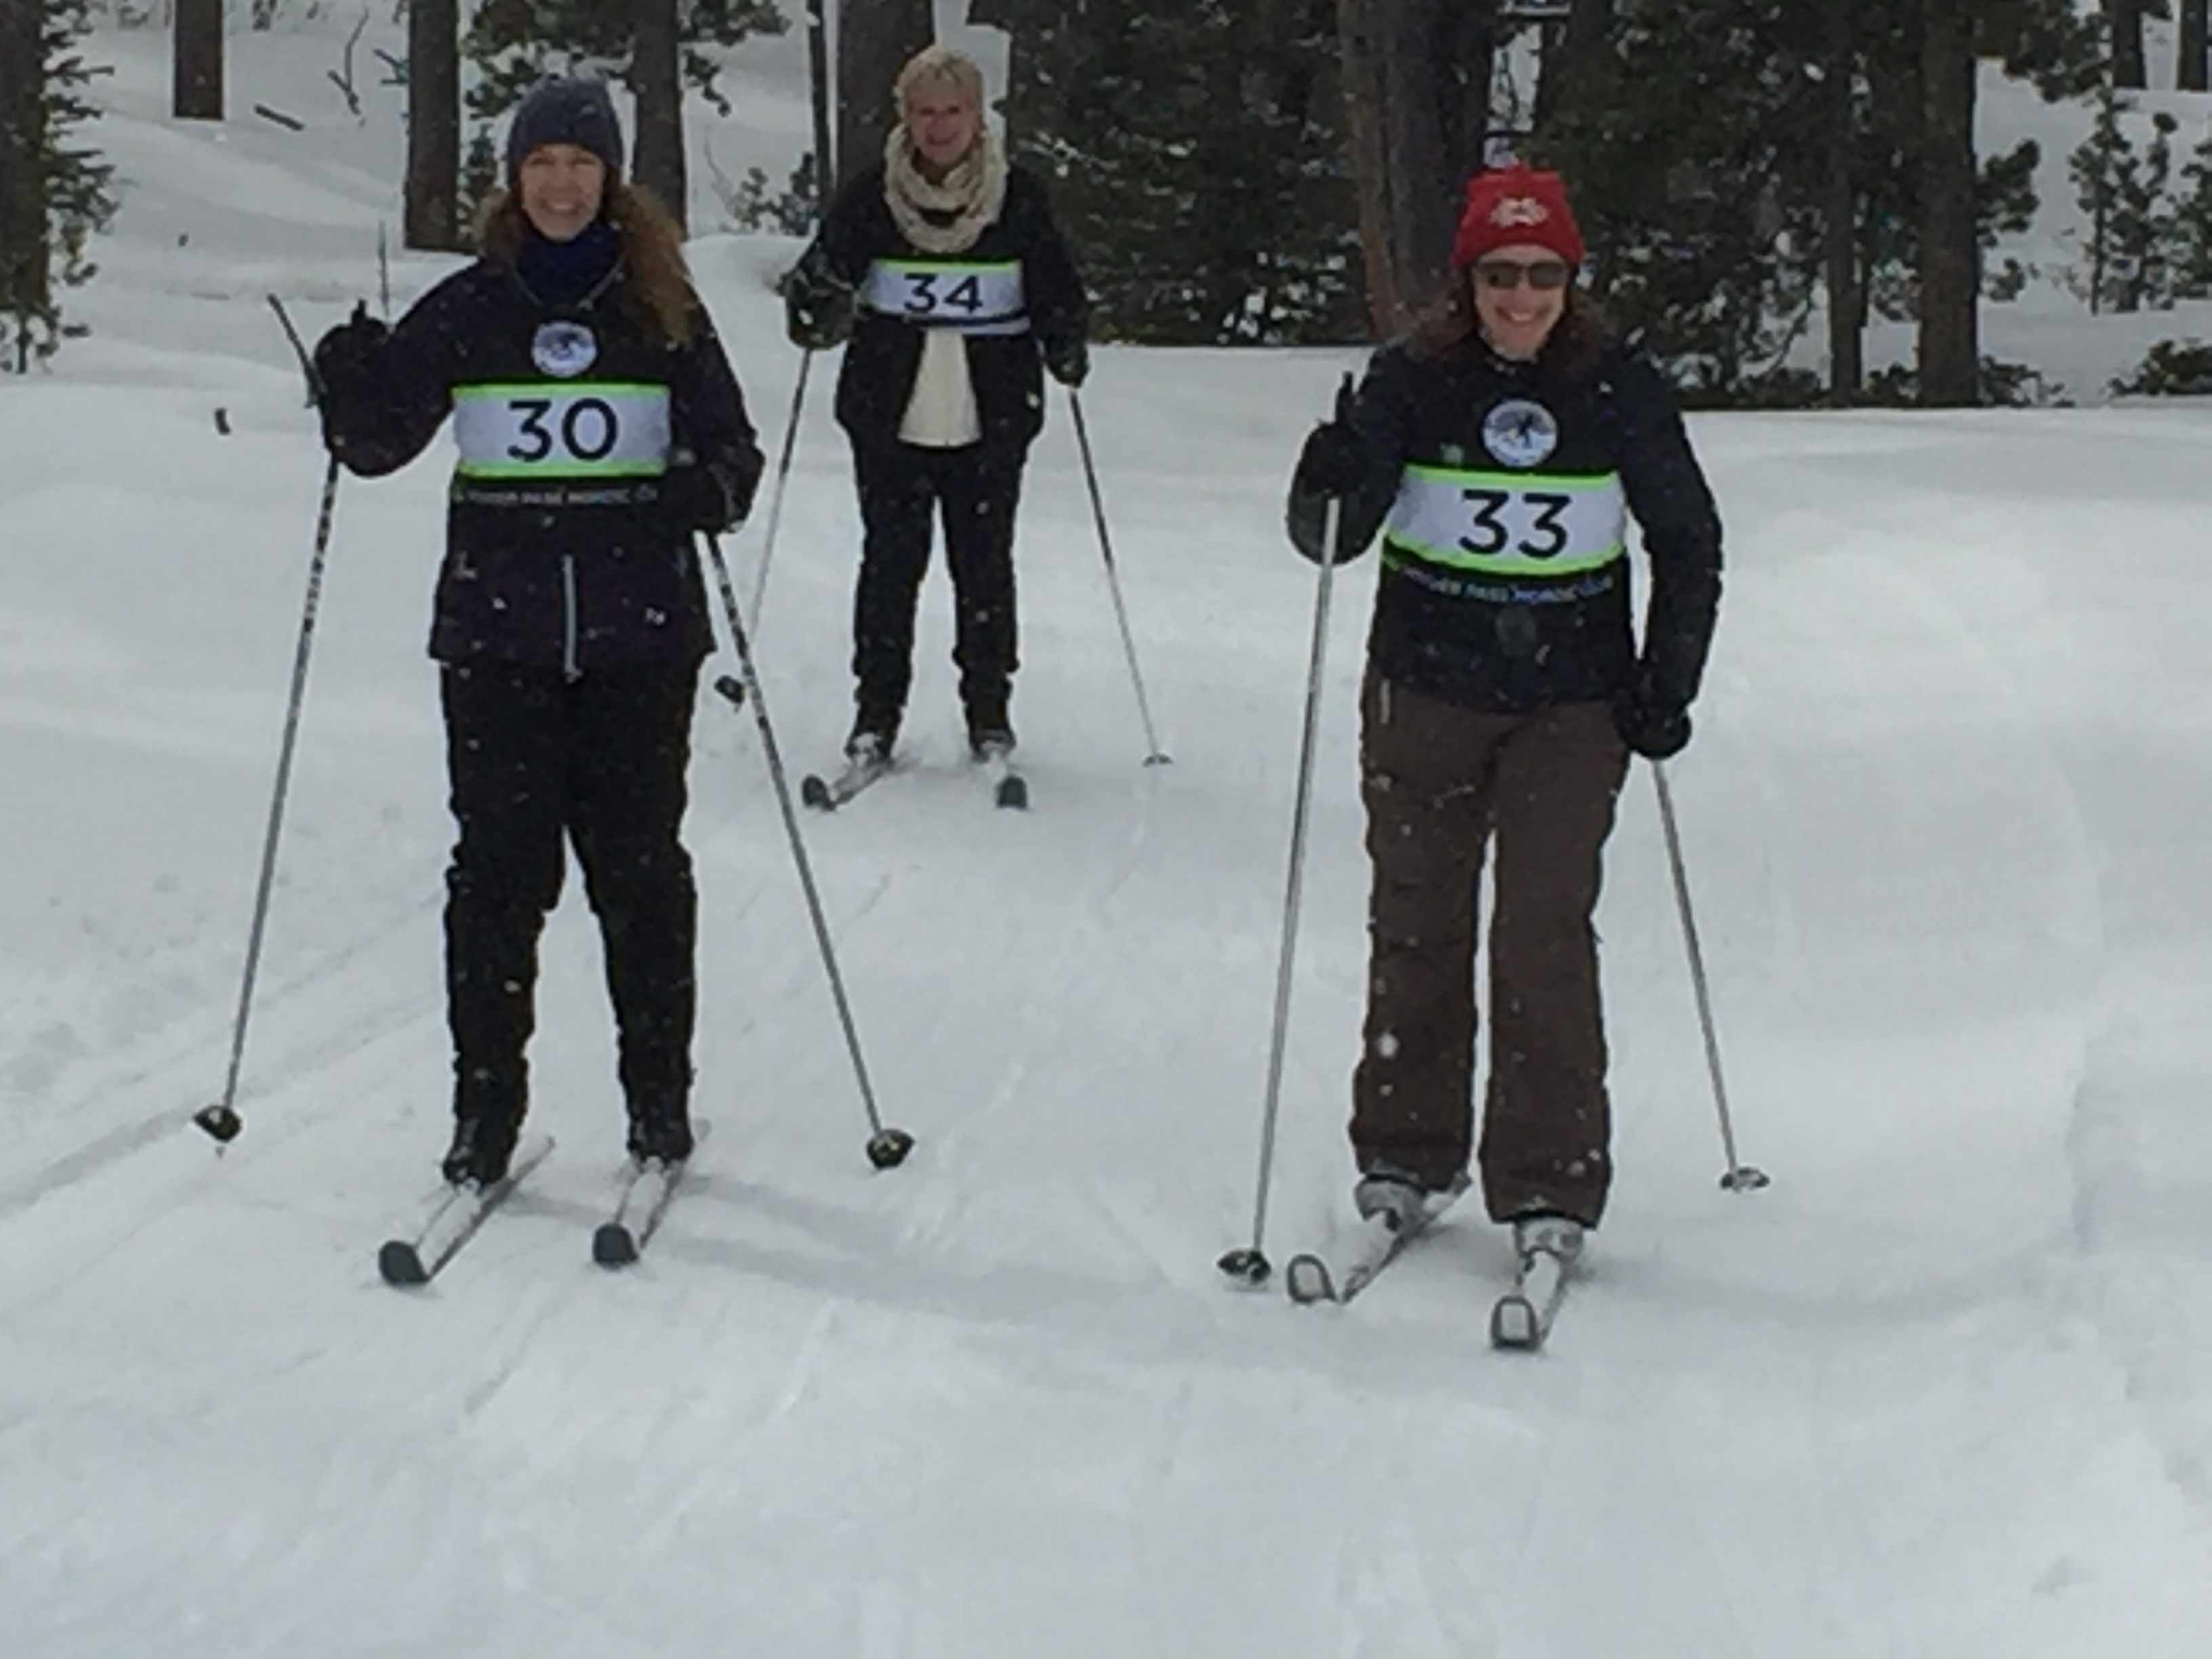 Skiers enjoying Pole Creek Challenge